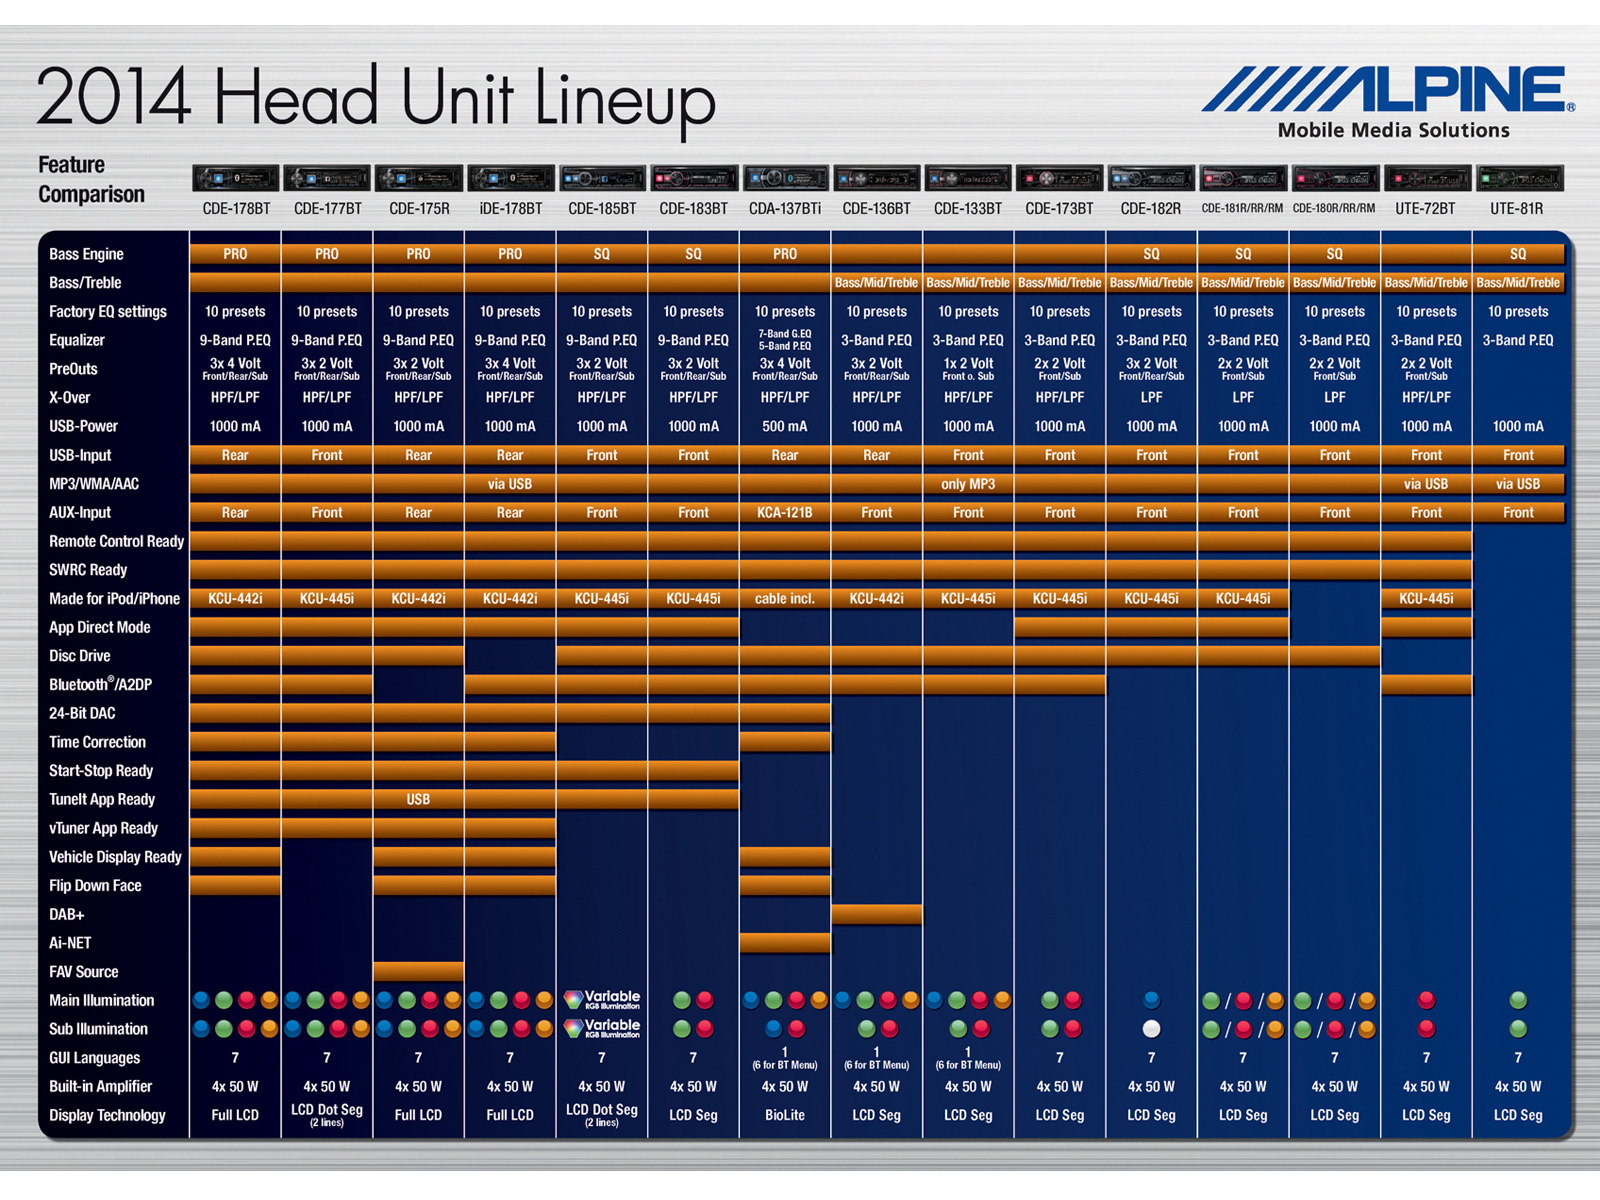 http://www.alpine.co.uk/fileadmin/images/MainNavigation/Products/Charts/2014/productpic_2014_Head_Unit_Lineup_15_HUs_EN.jpg